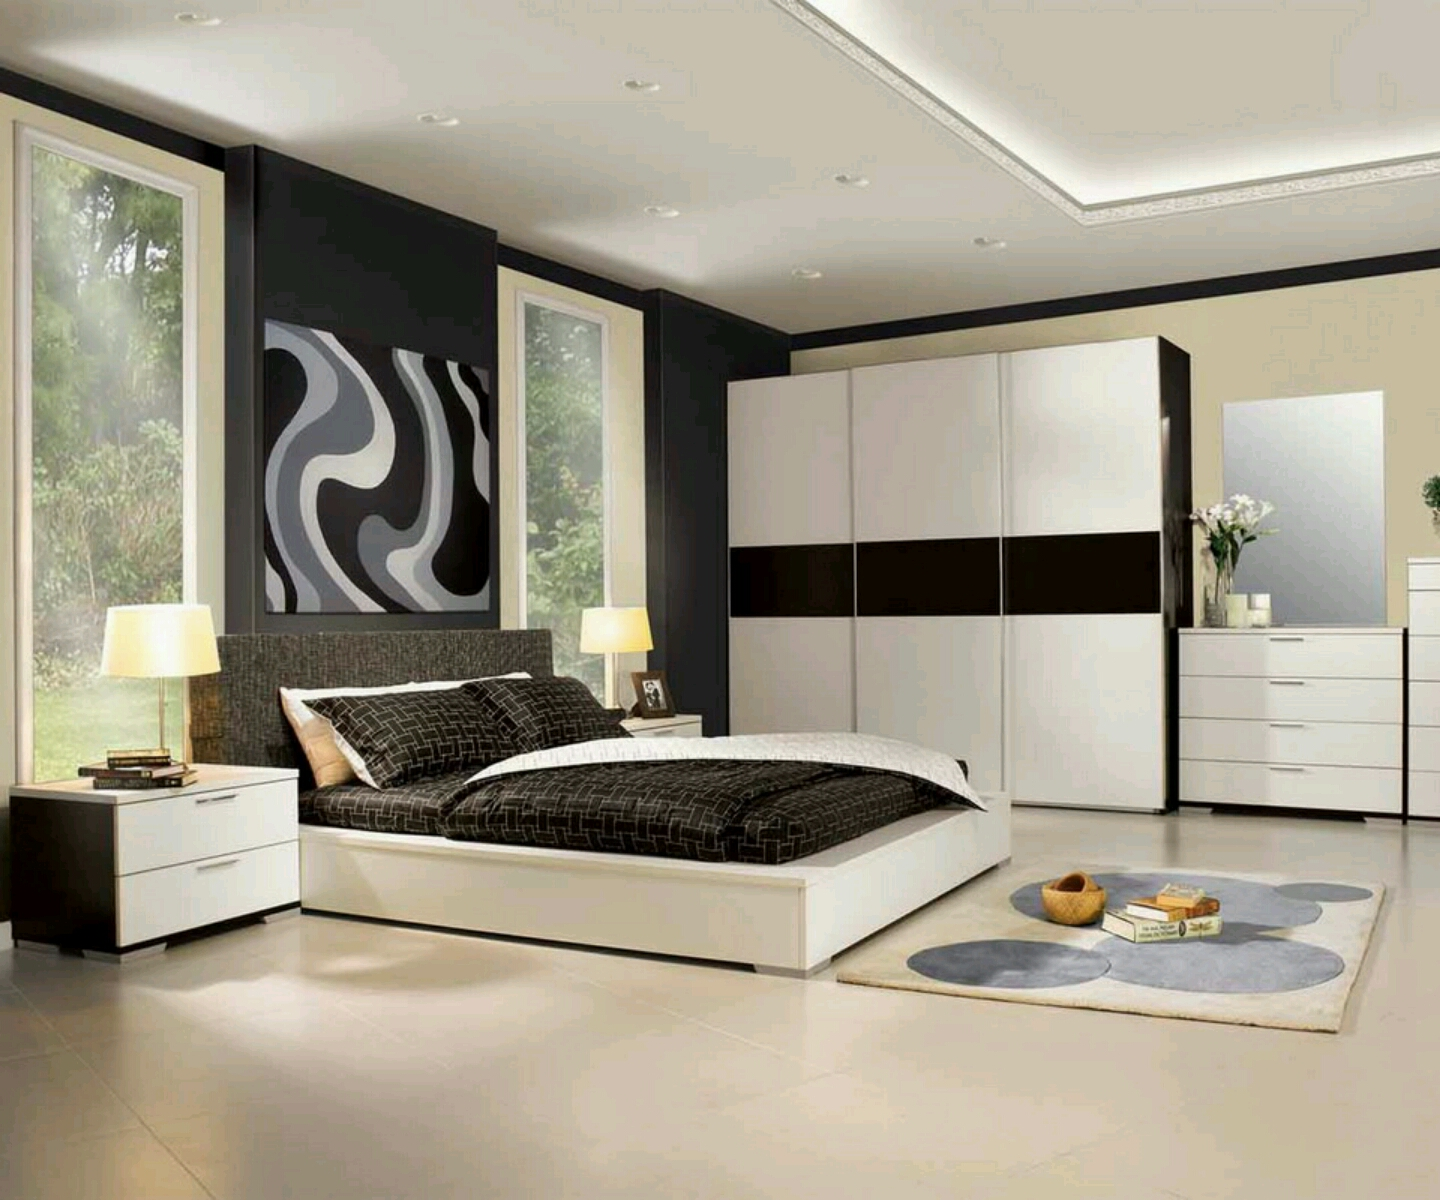 Bedroom Designs | 1440 x 1200 · 911 kB · jpeg